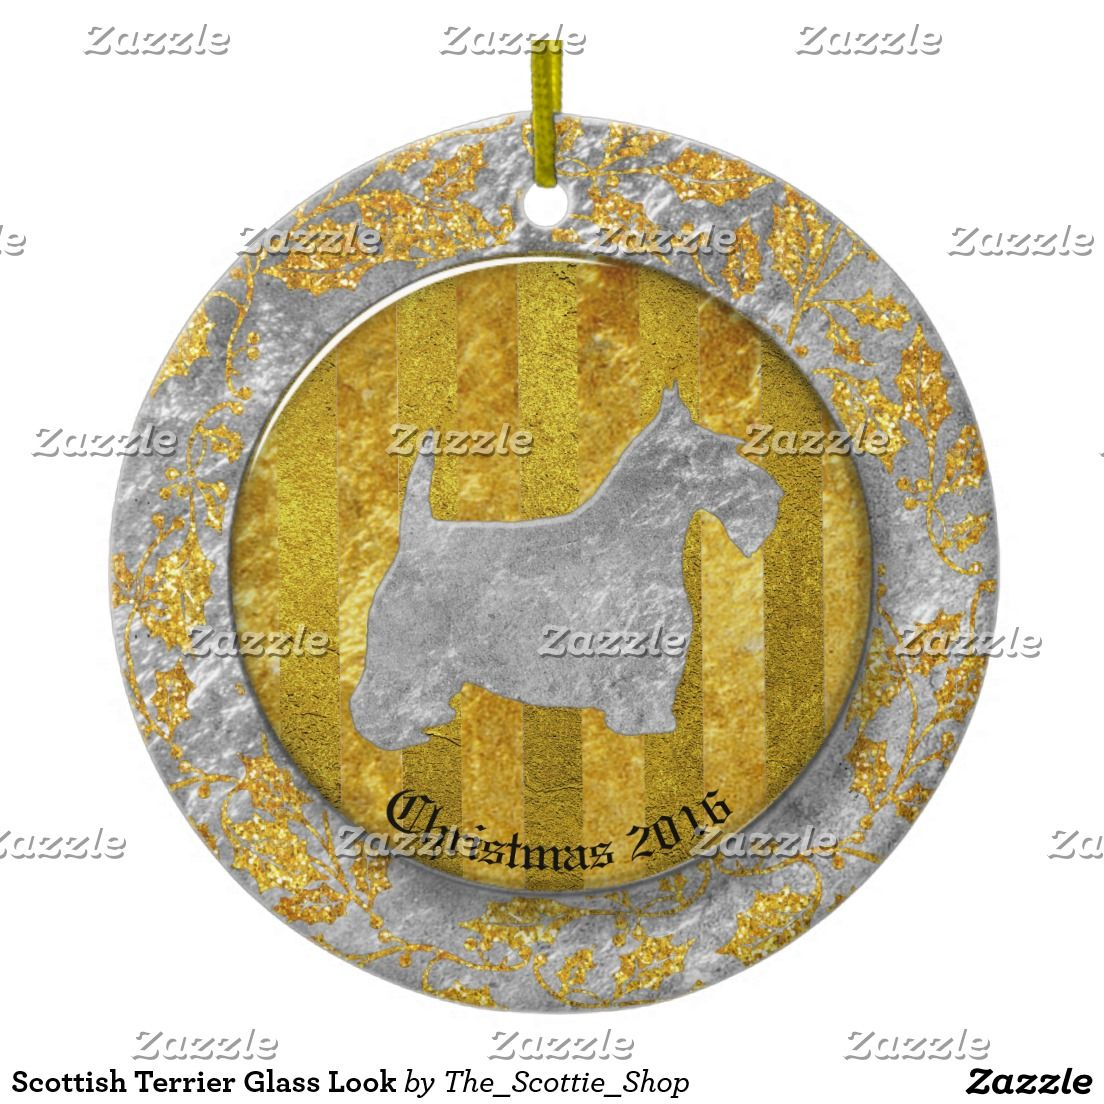 Scottish Terrier Glass Look Ceramic Ornament